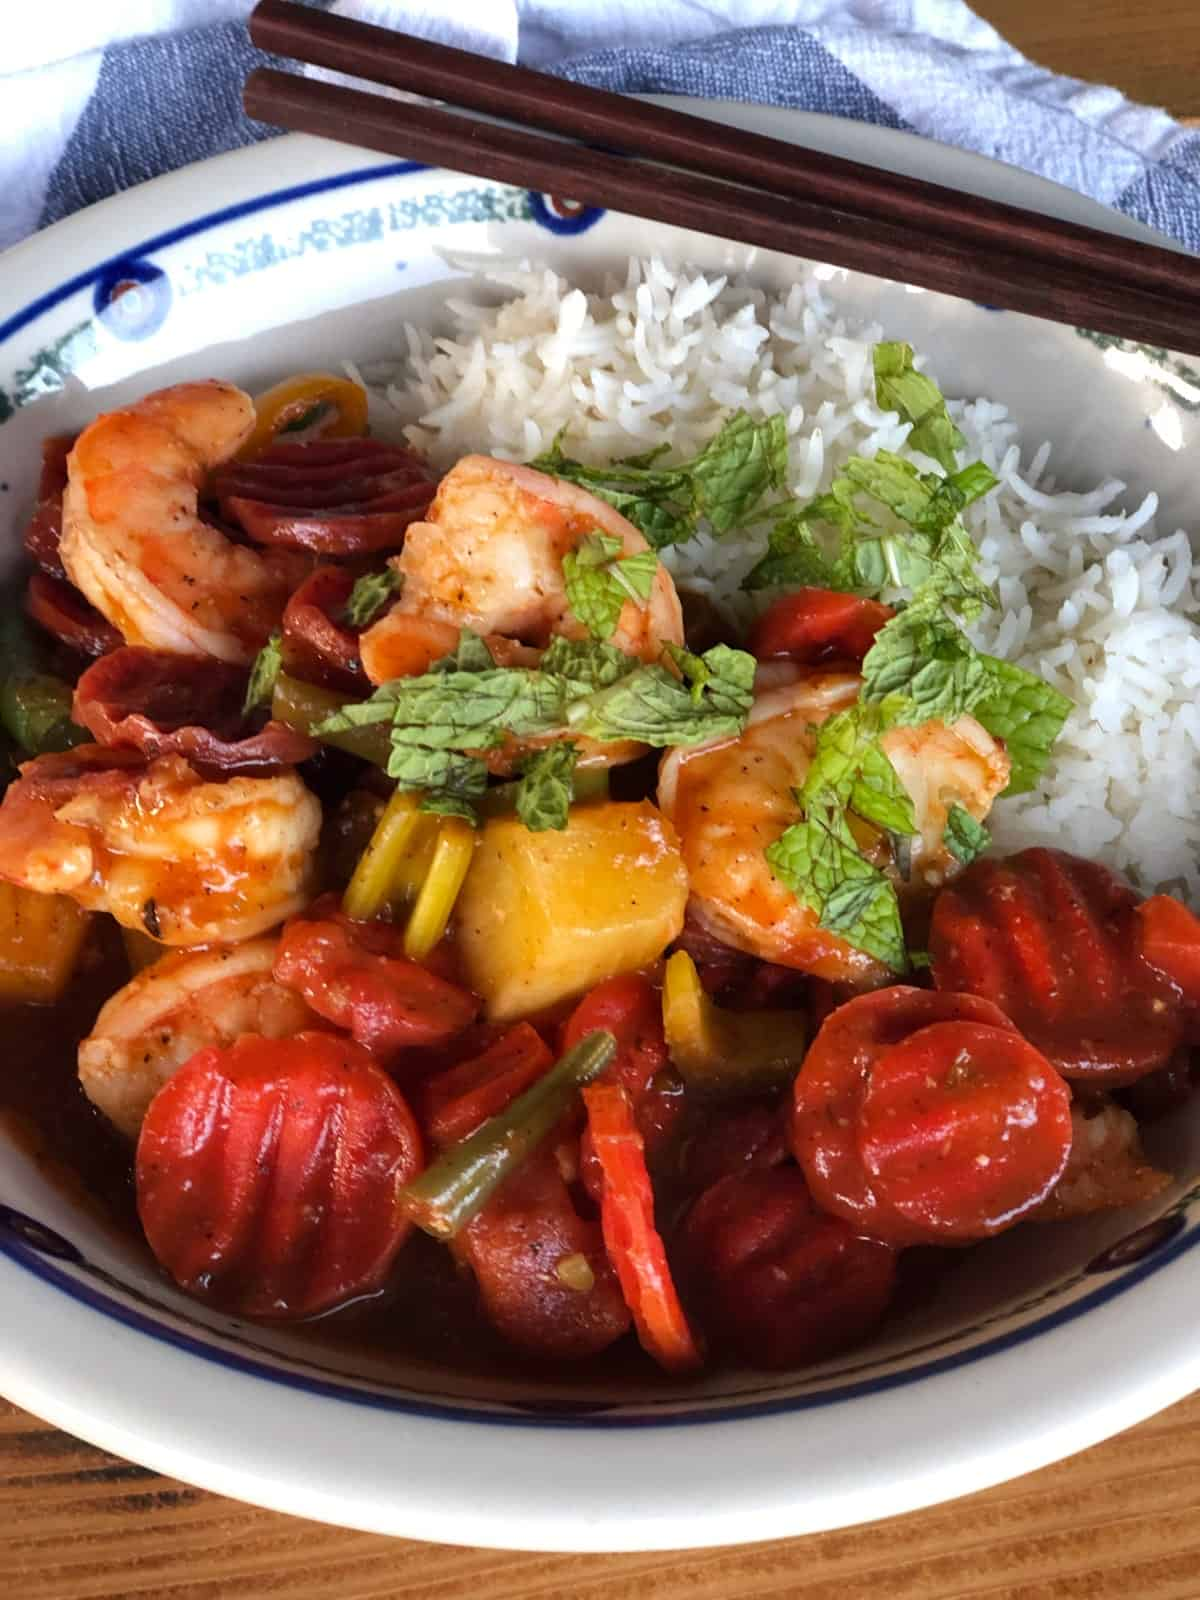 Caribbean shrimp and vegetables with white rice in bowl with chopsticks.